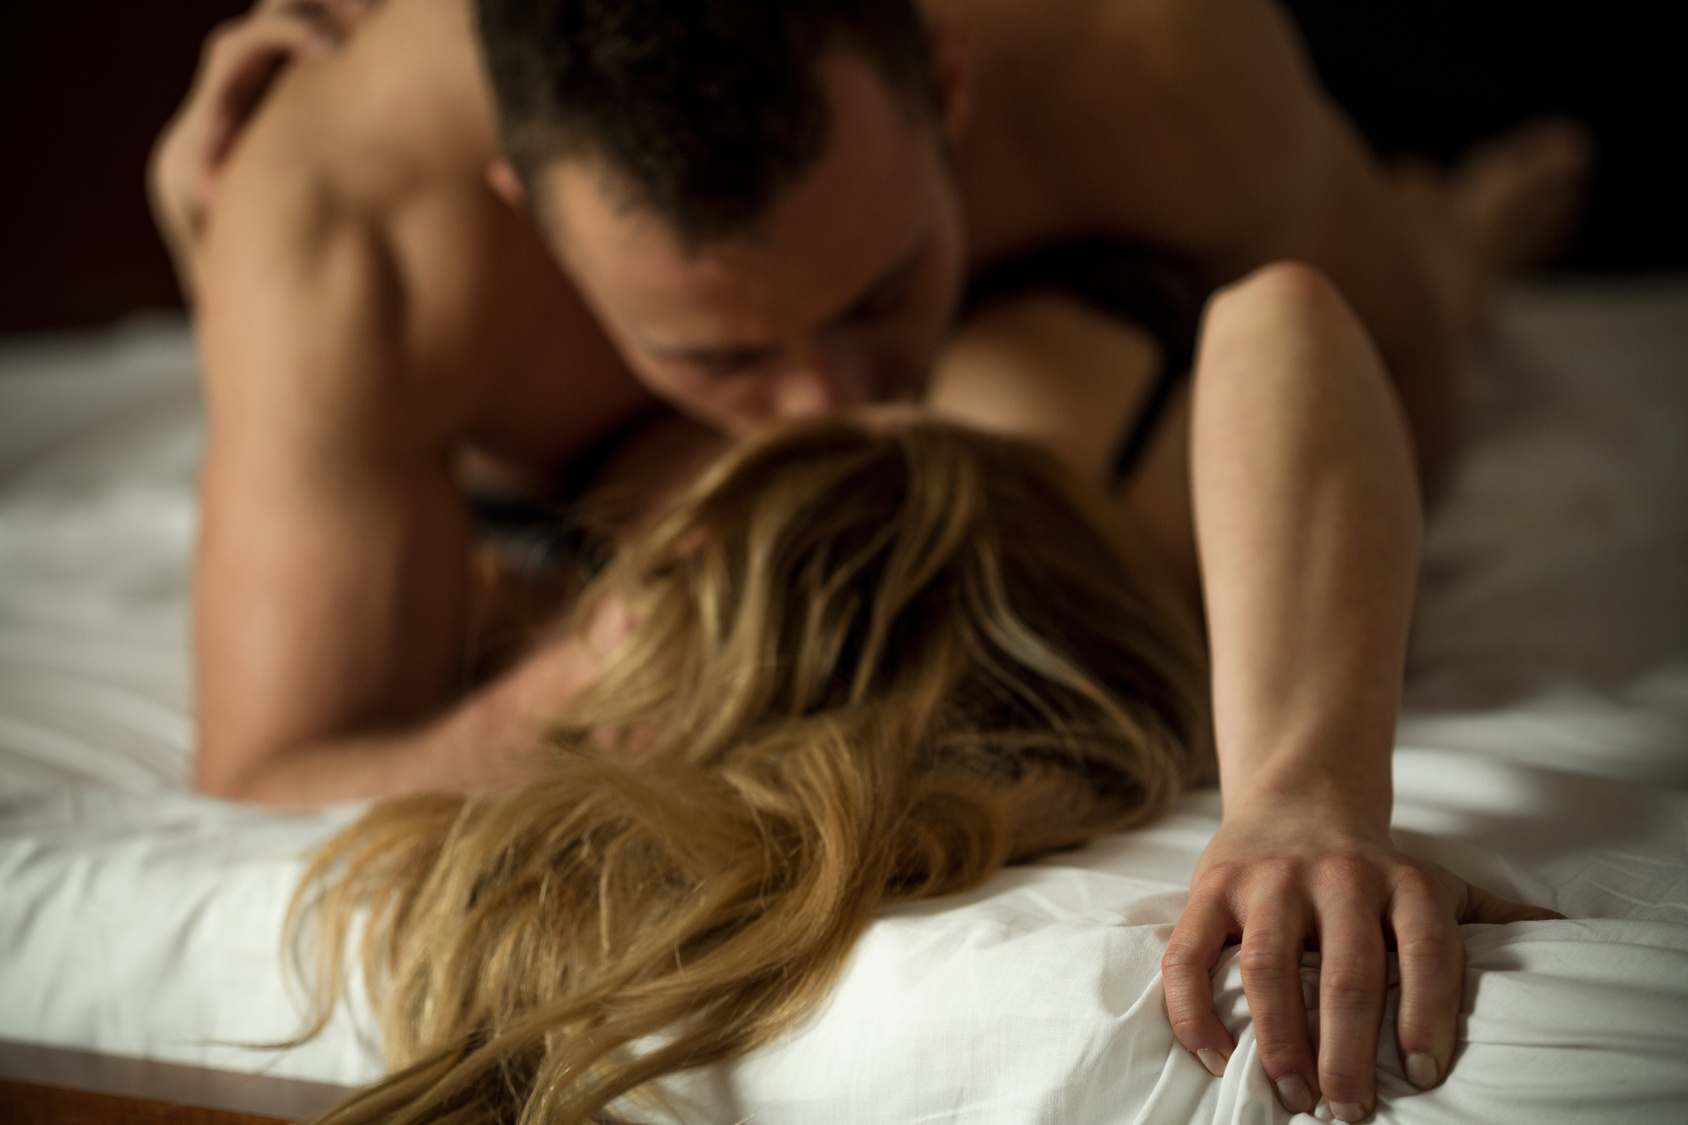 secaucus sex personals 100% free online dating in secaucus 1,500,000 daily active members.